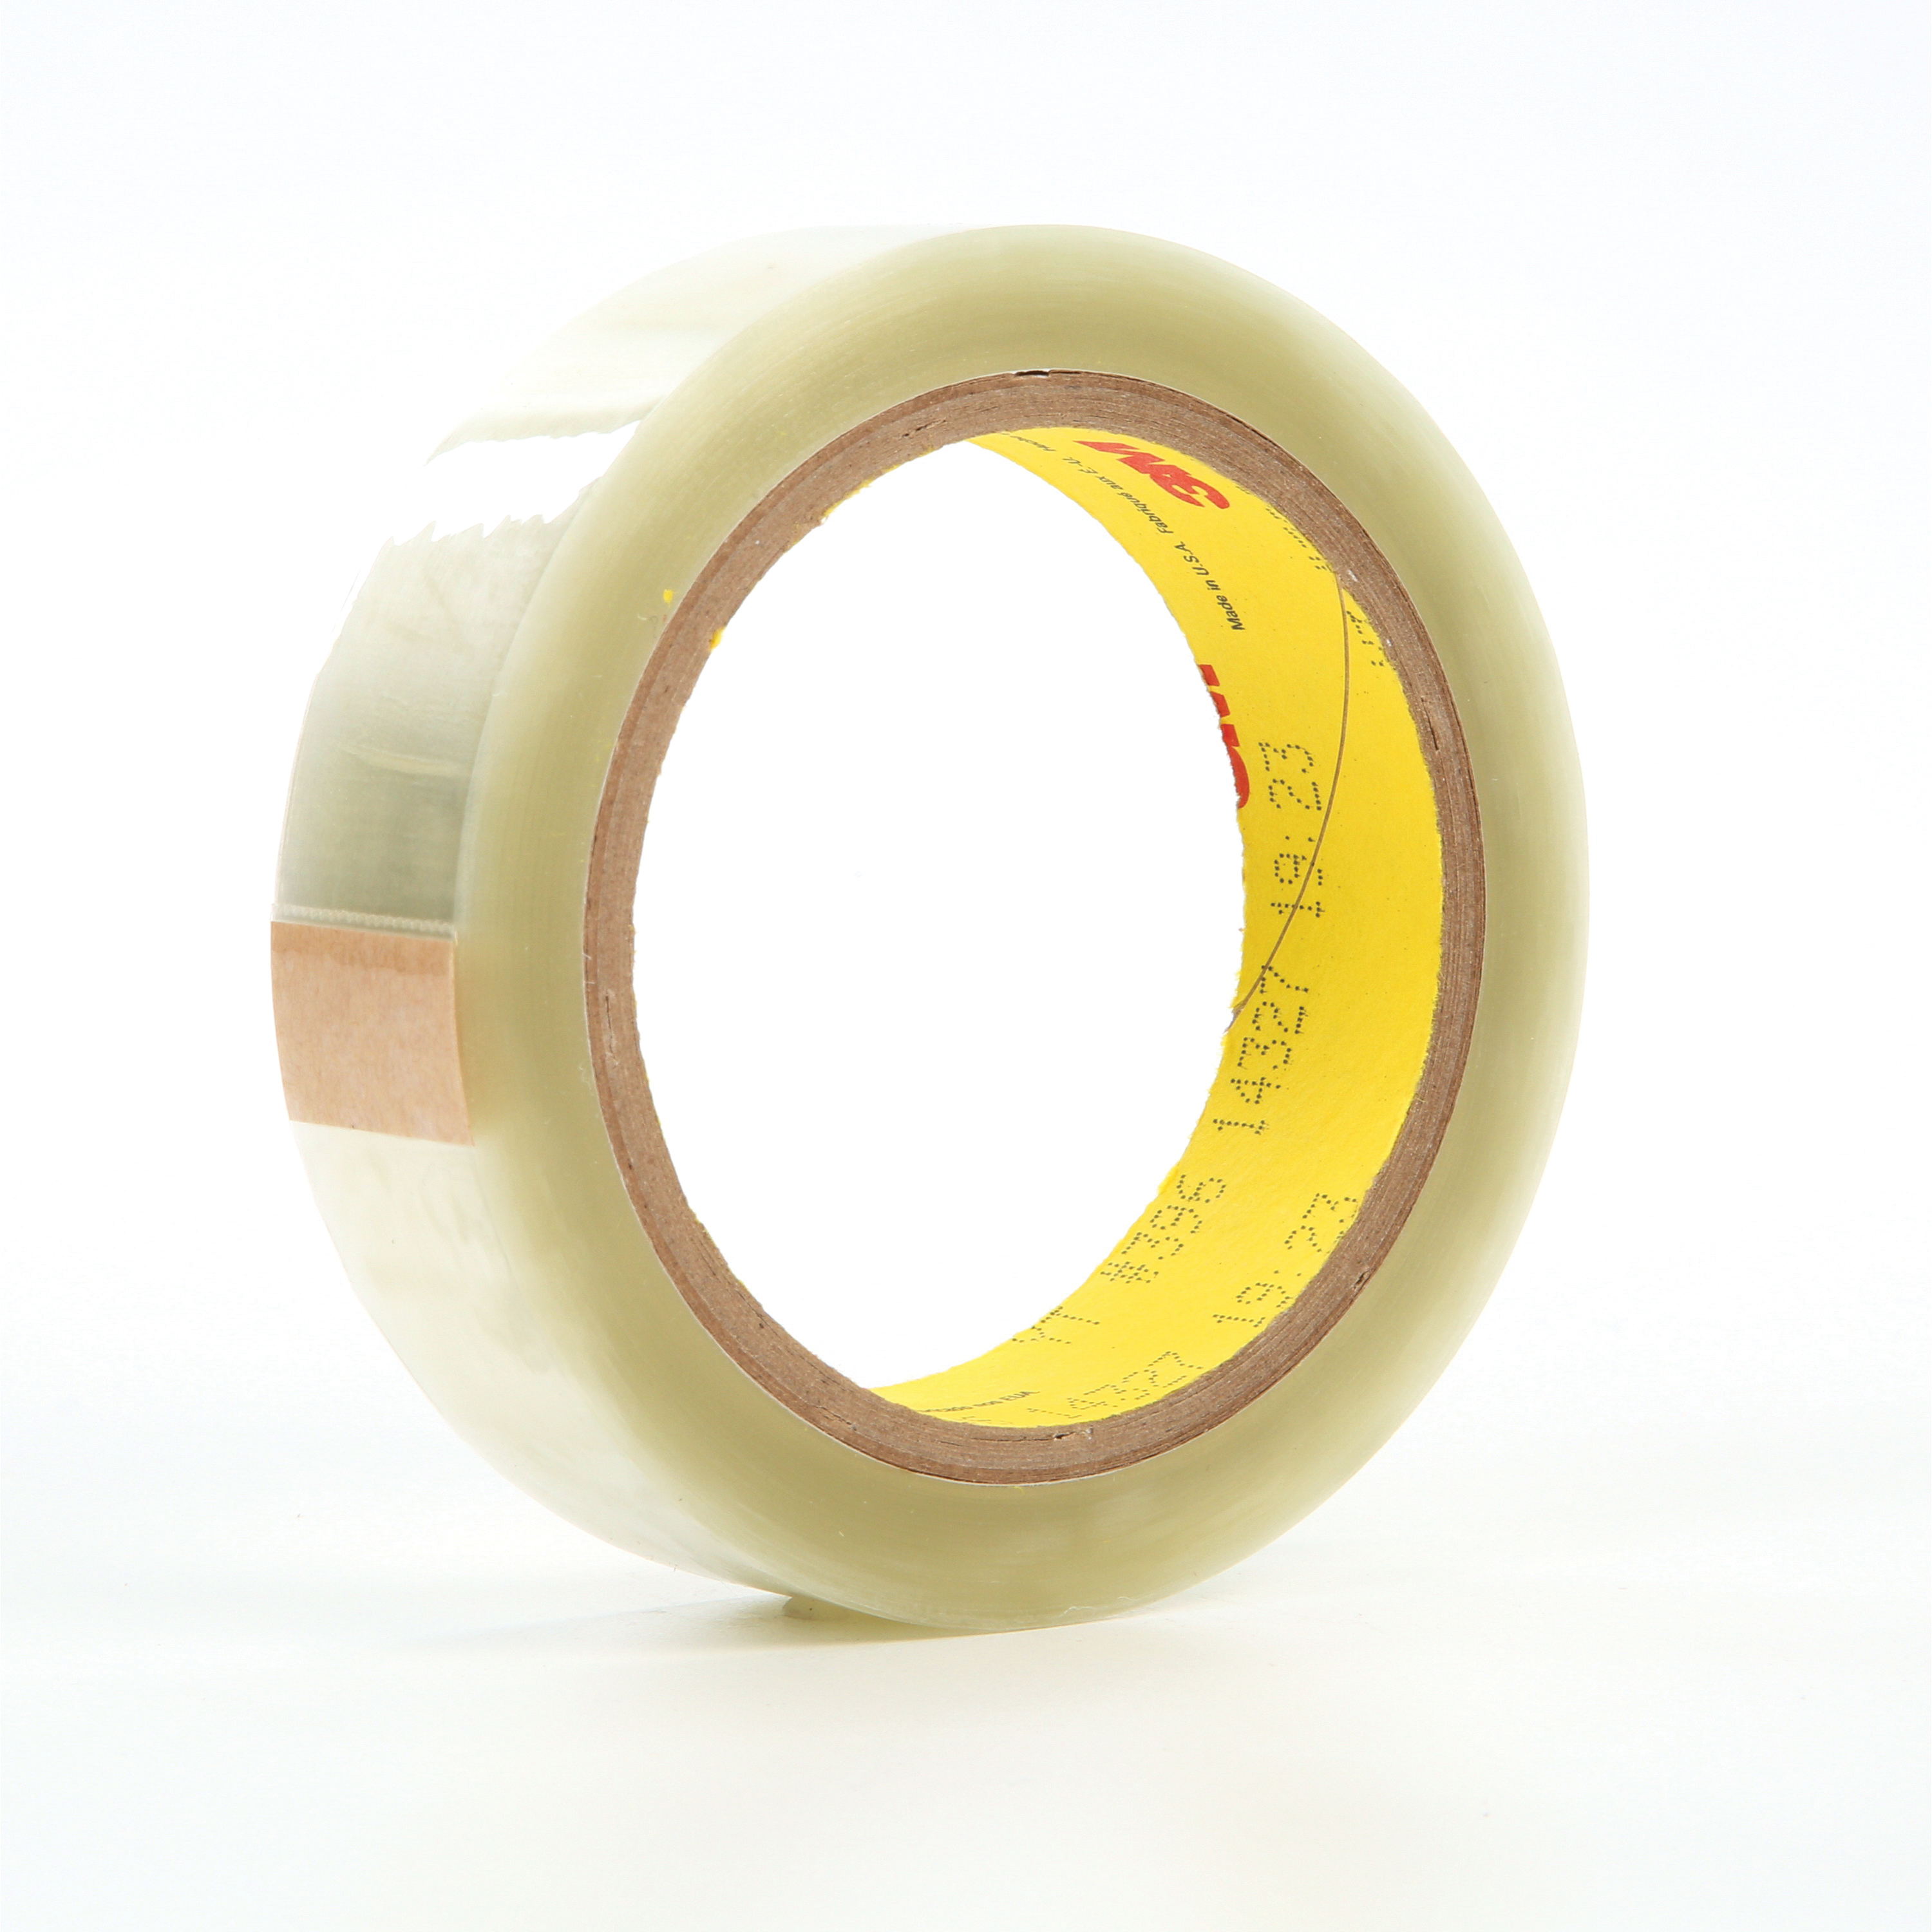 3M™ 021200-19084 Super Bond Film Tape, 36 yd L x 1 in W, 4.1 mil THK, Rubber Adhesive, 1.7 mil Polyester Backing, Transparent